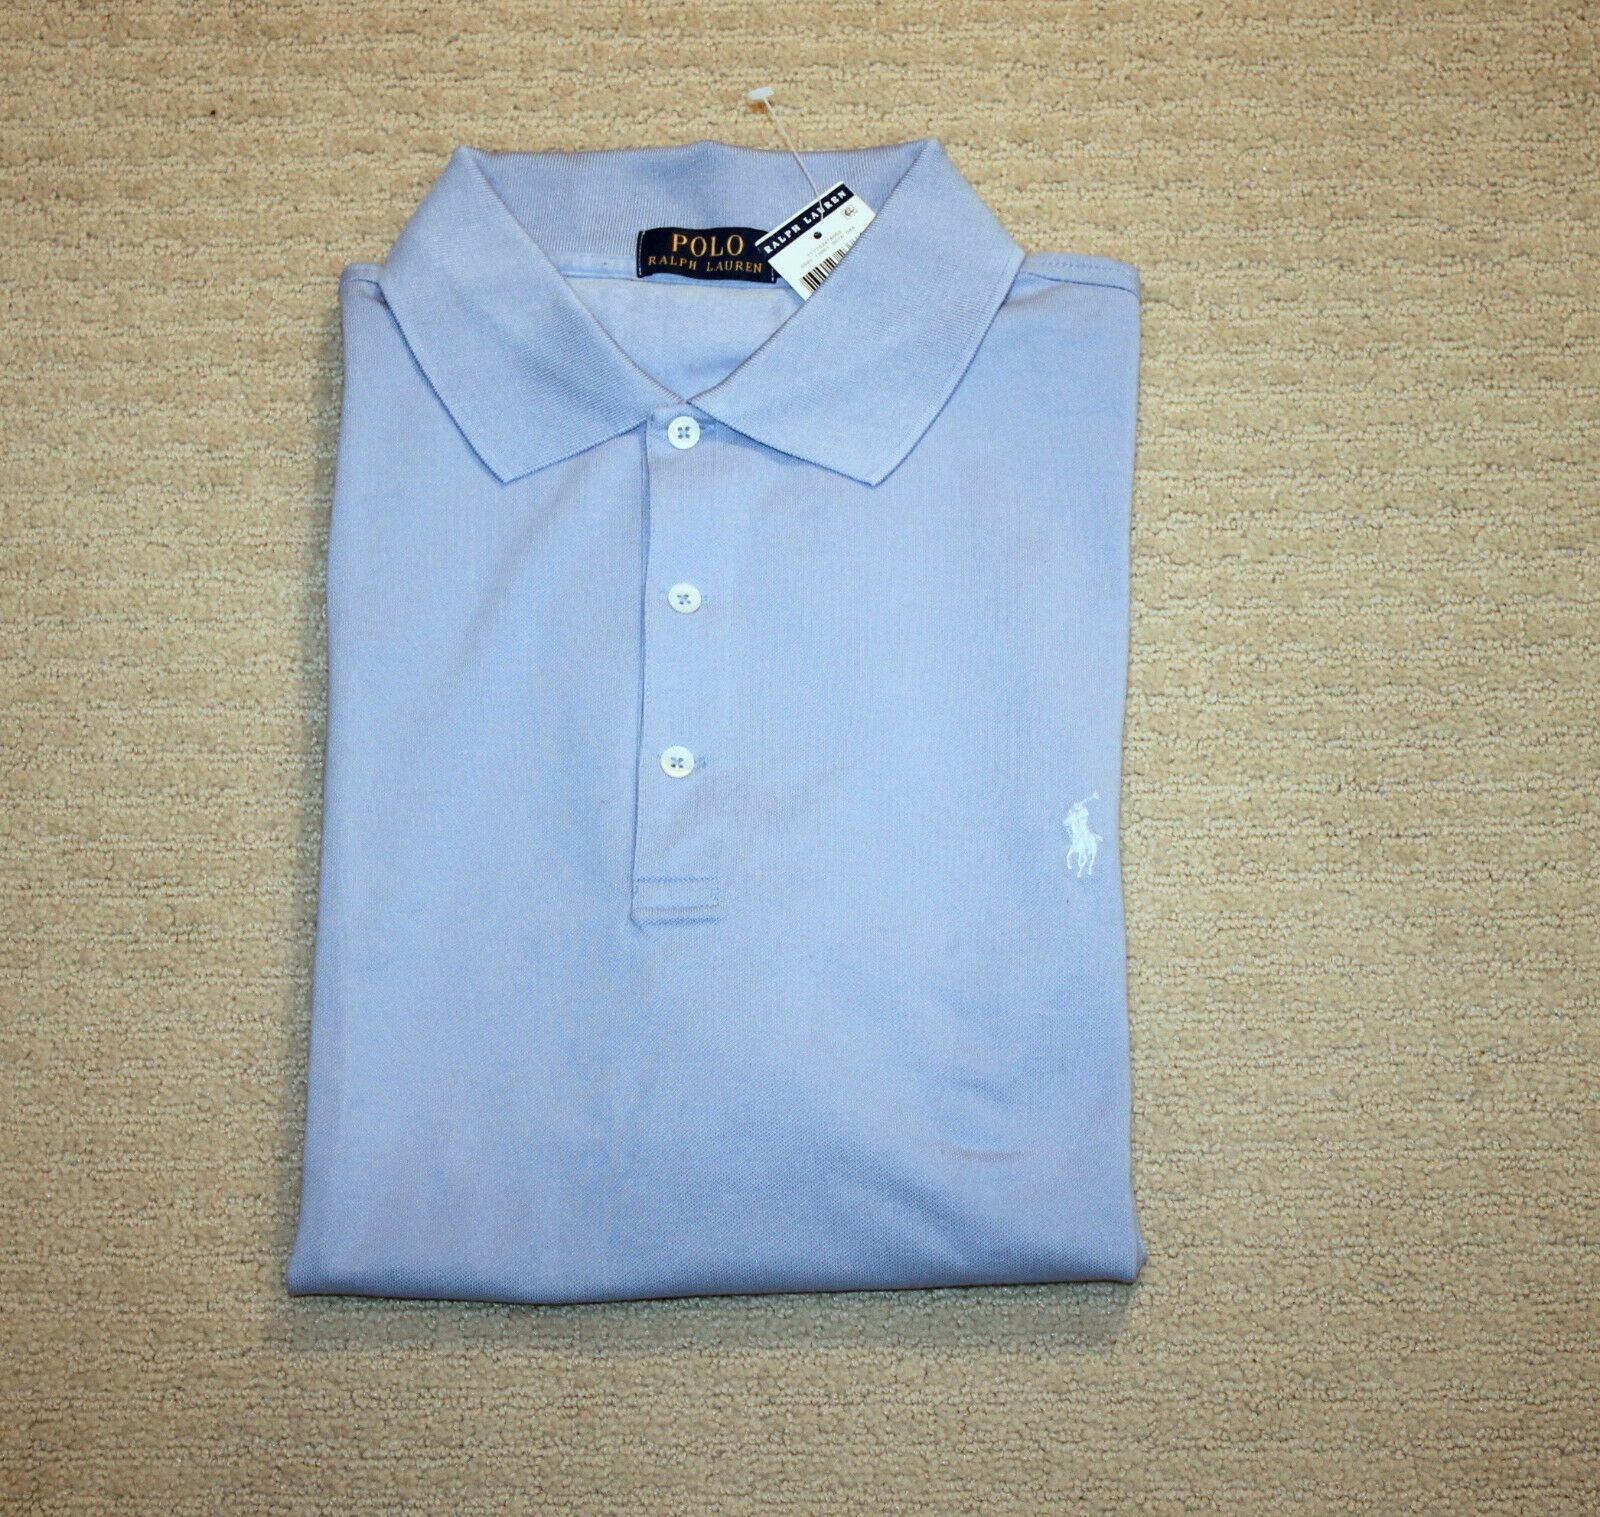 NEW Polo Ralph Lauren Big and Tall Pony Logo Classic Fit bluee Shirt